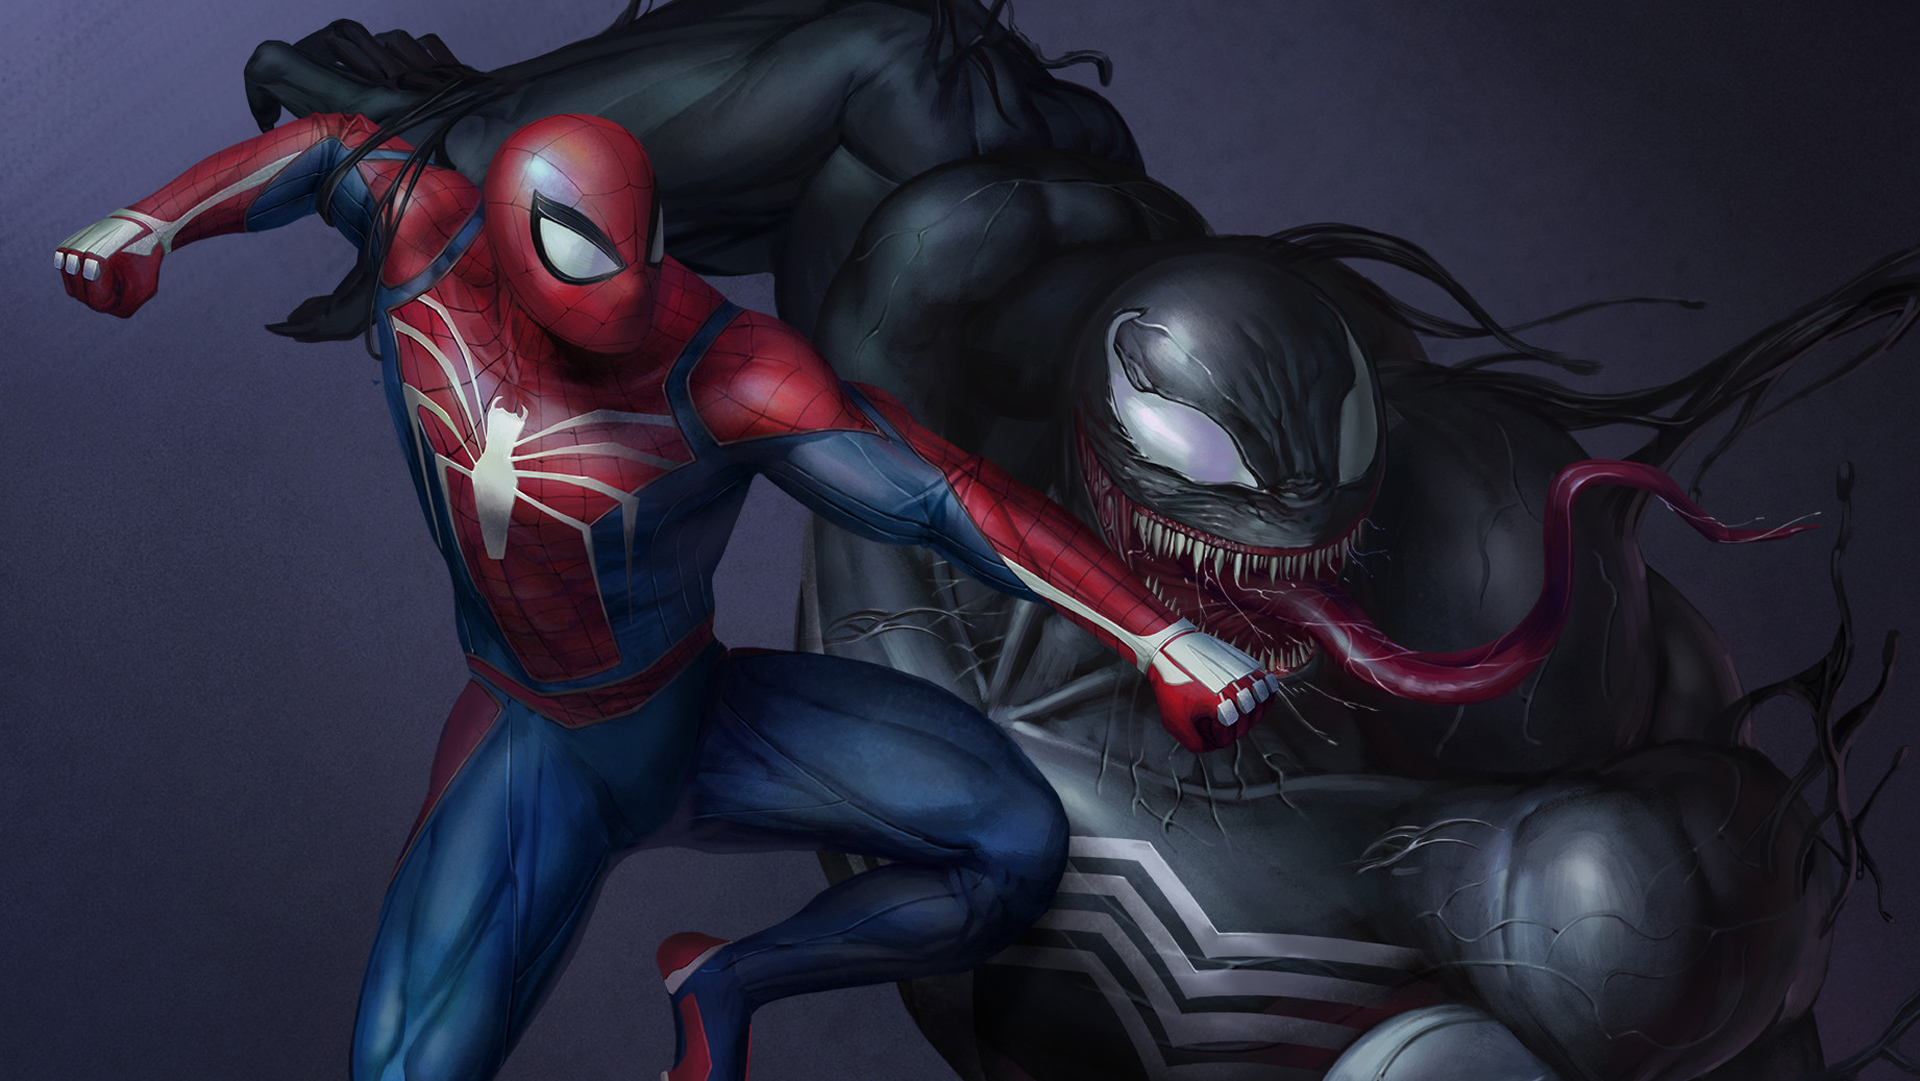 750x1334 Spiderman Vs Venom Artwork Hd Iphone 6 Iphone 6s Iphone 7